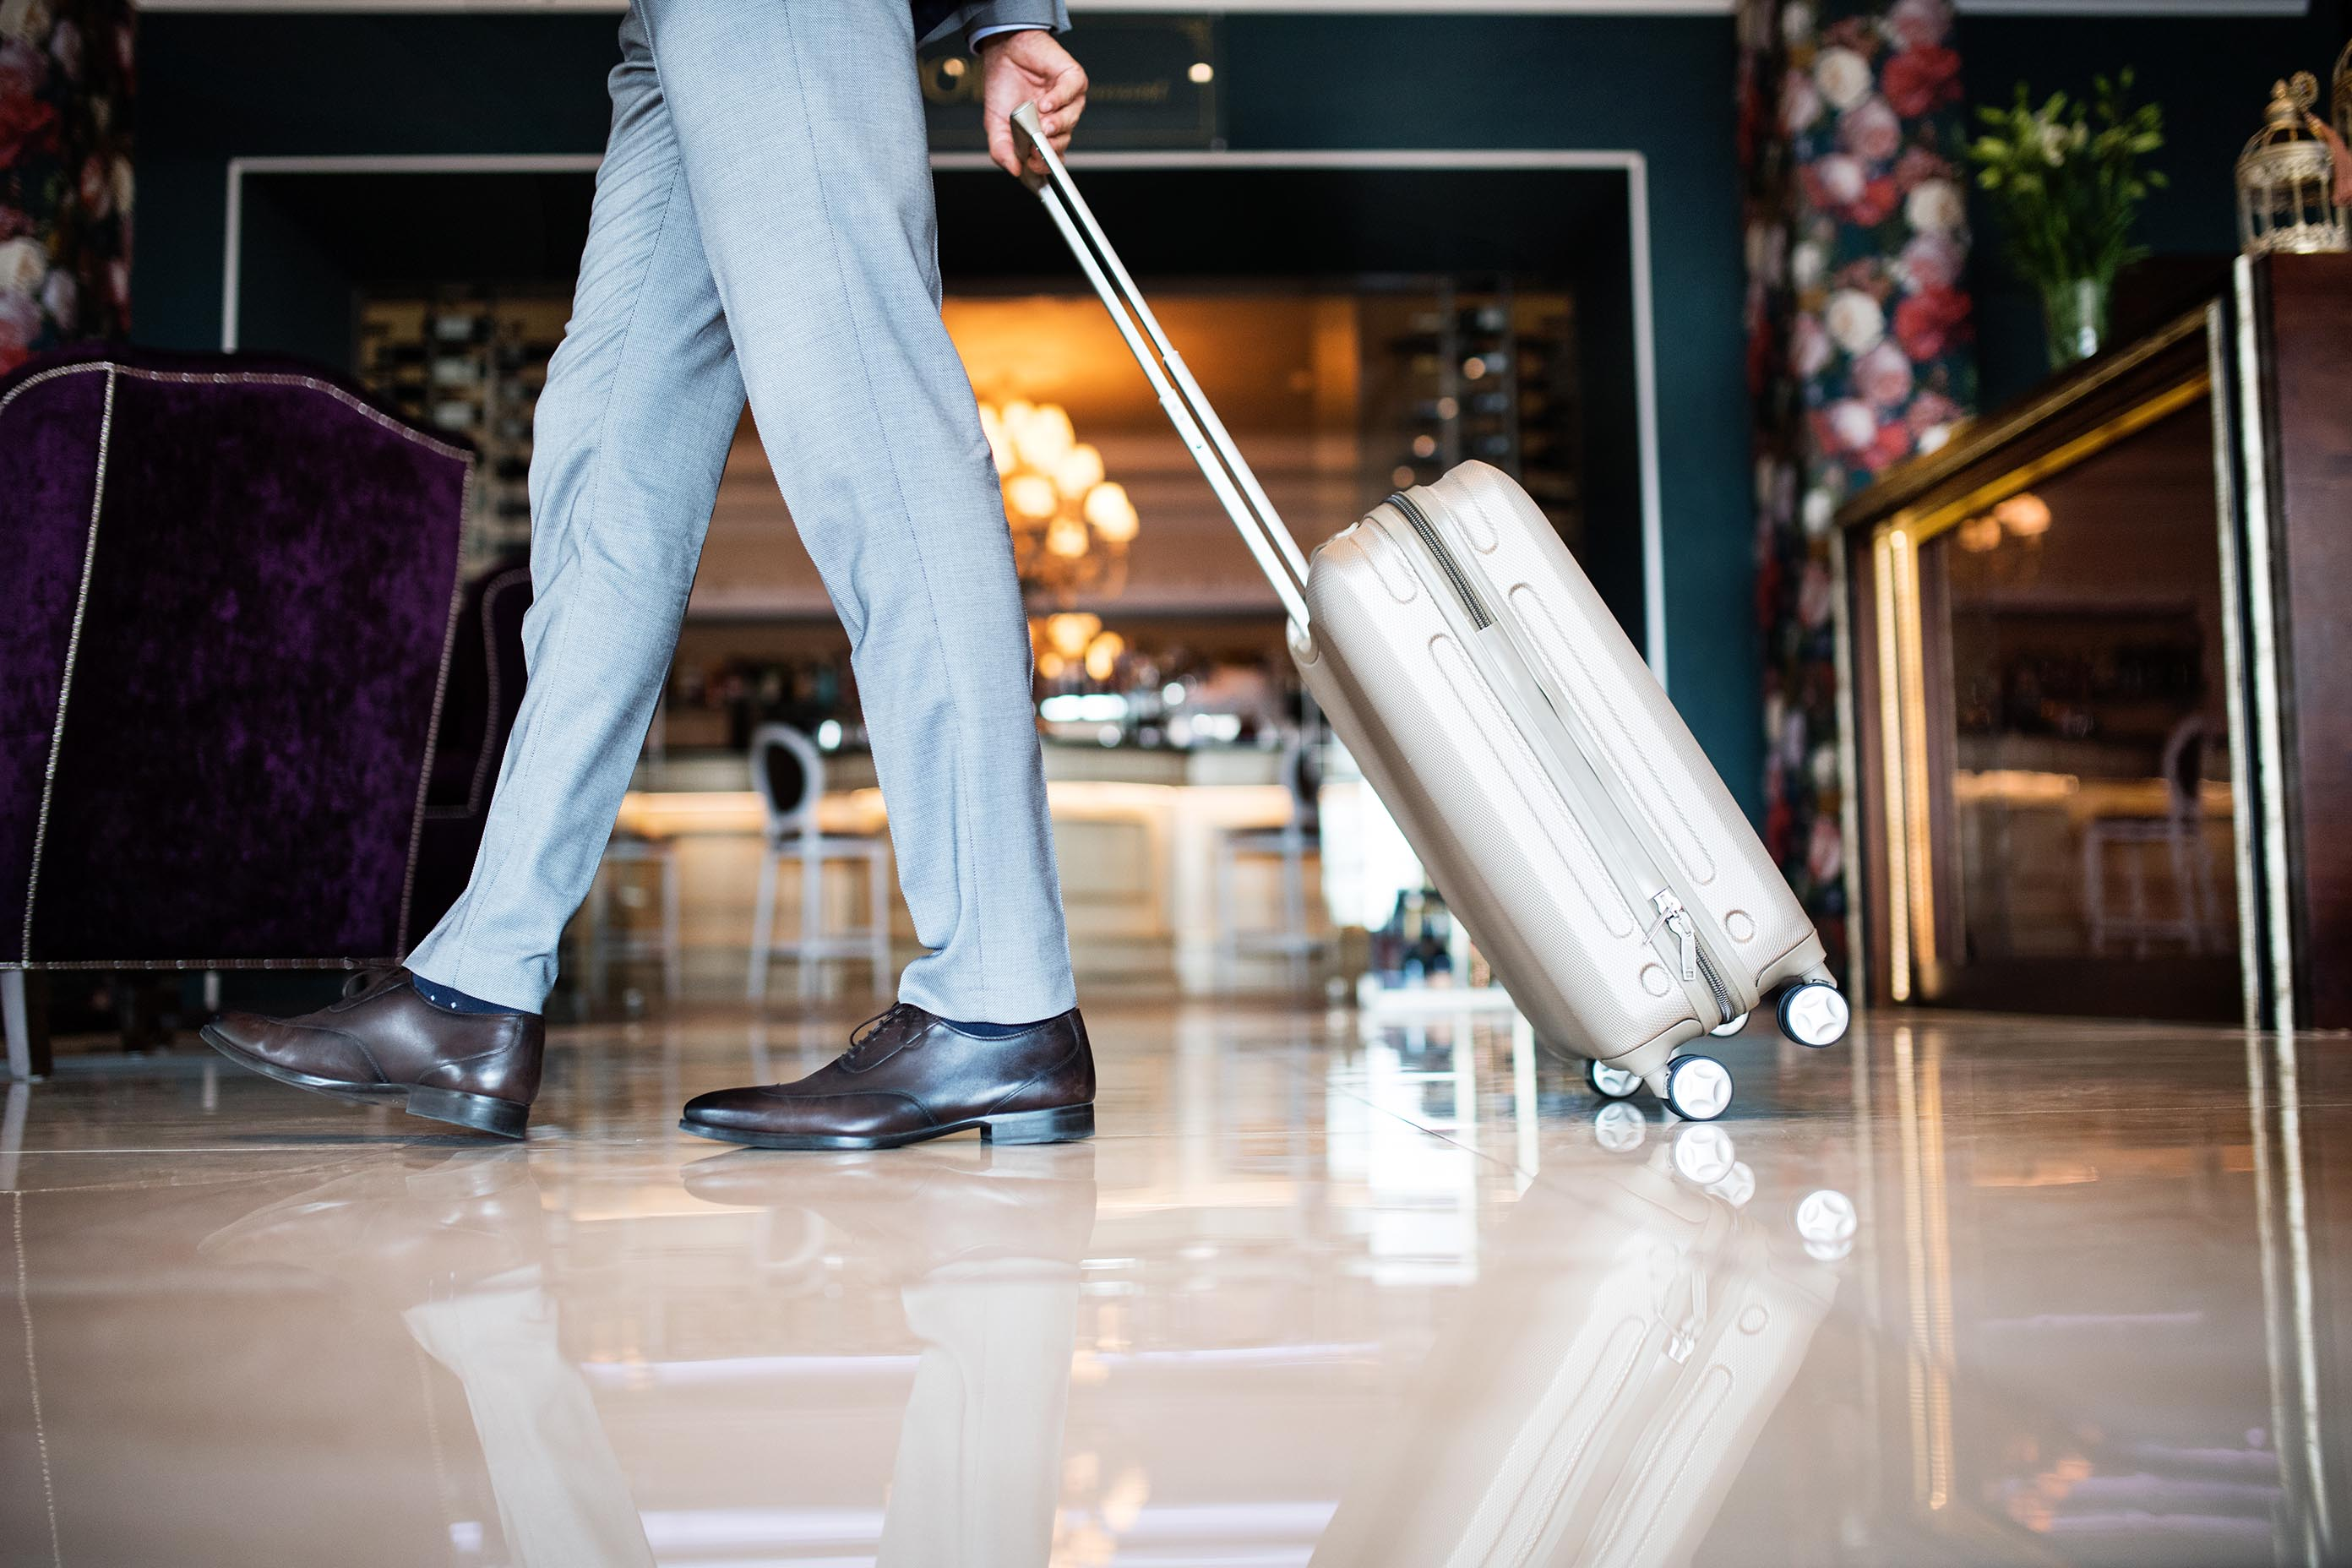 Grow your transient business with SynXis Business Travel Services